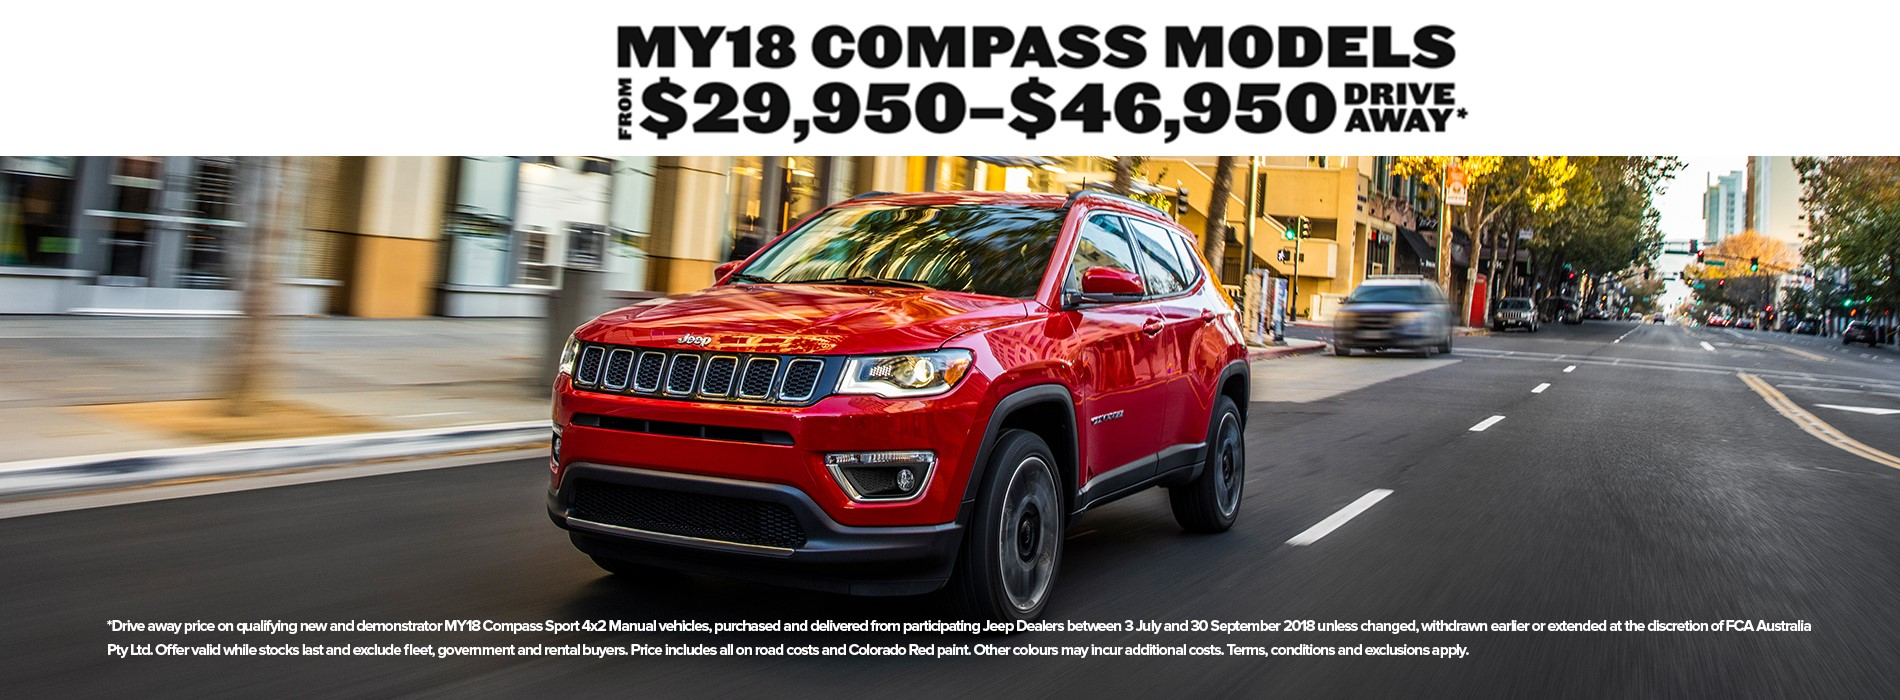 Jeep Compass Drive Away Offers